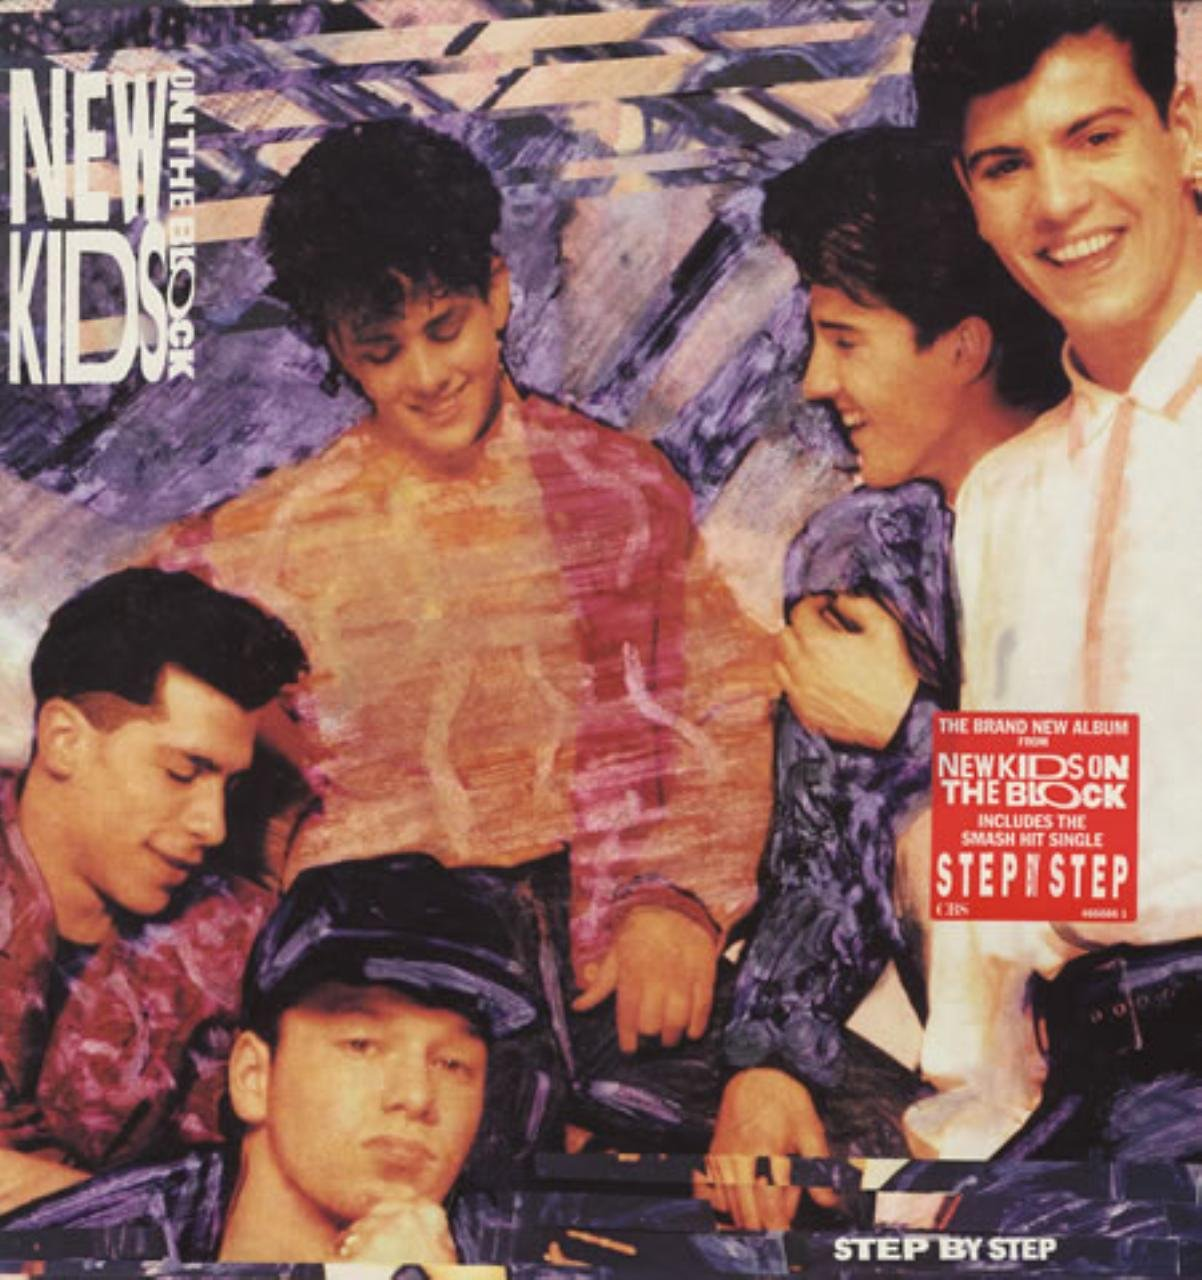 NEW KIDS ON THE BLOCK - step by step LP - Amazon.com Music